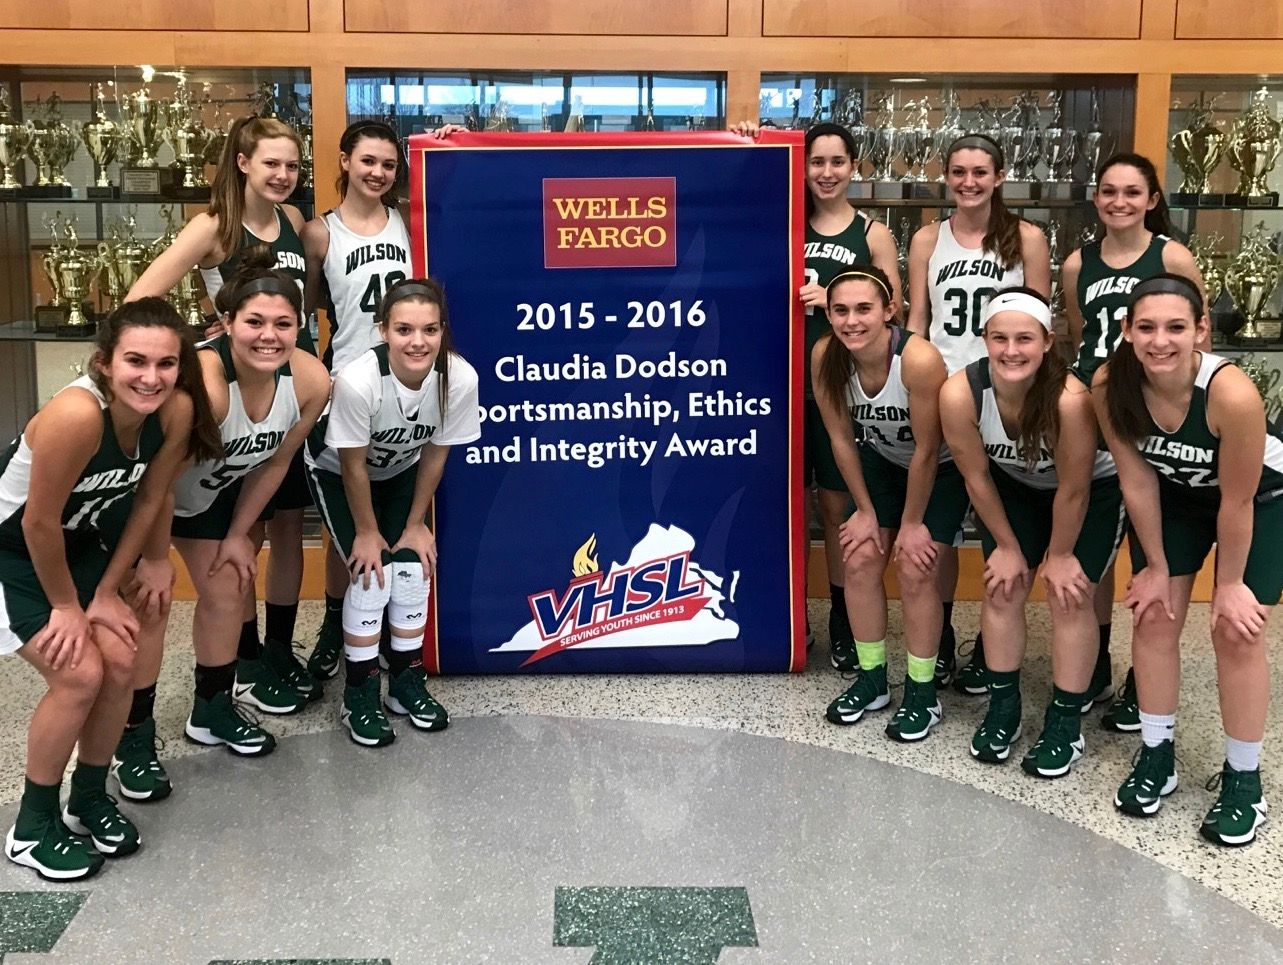 Members of Wilson Memorial's girls basketball team pose in front of the banner the school received for winning the VHSL's Claudia Dotson award for the 2015-16 school year.